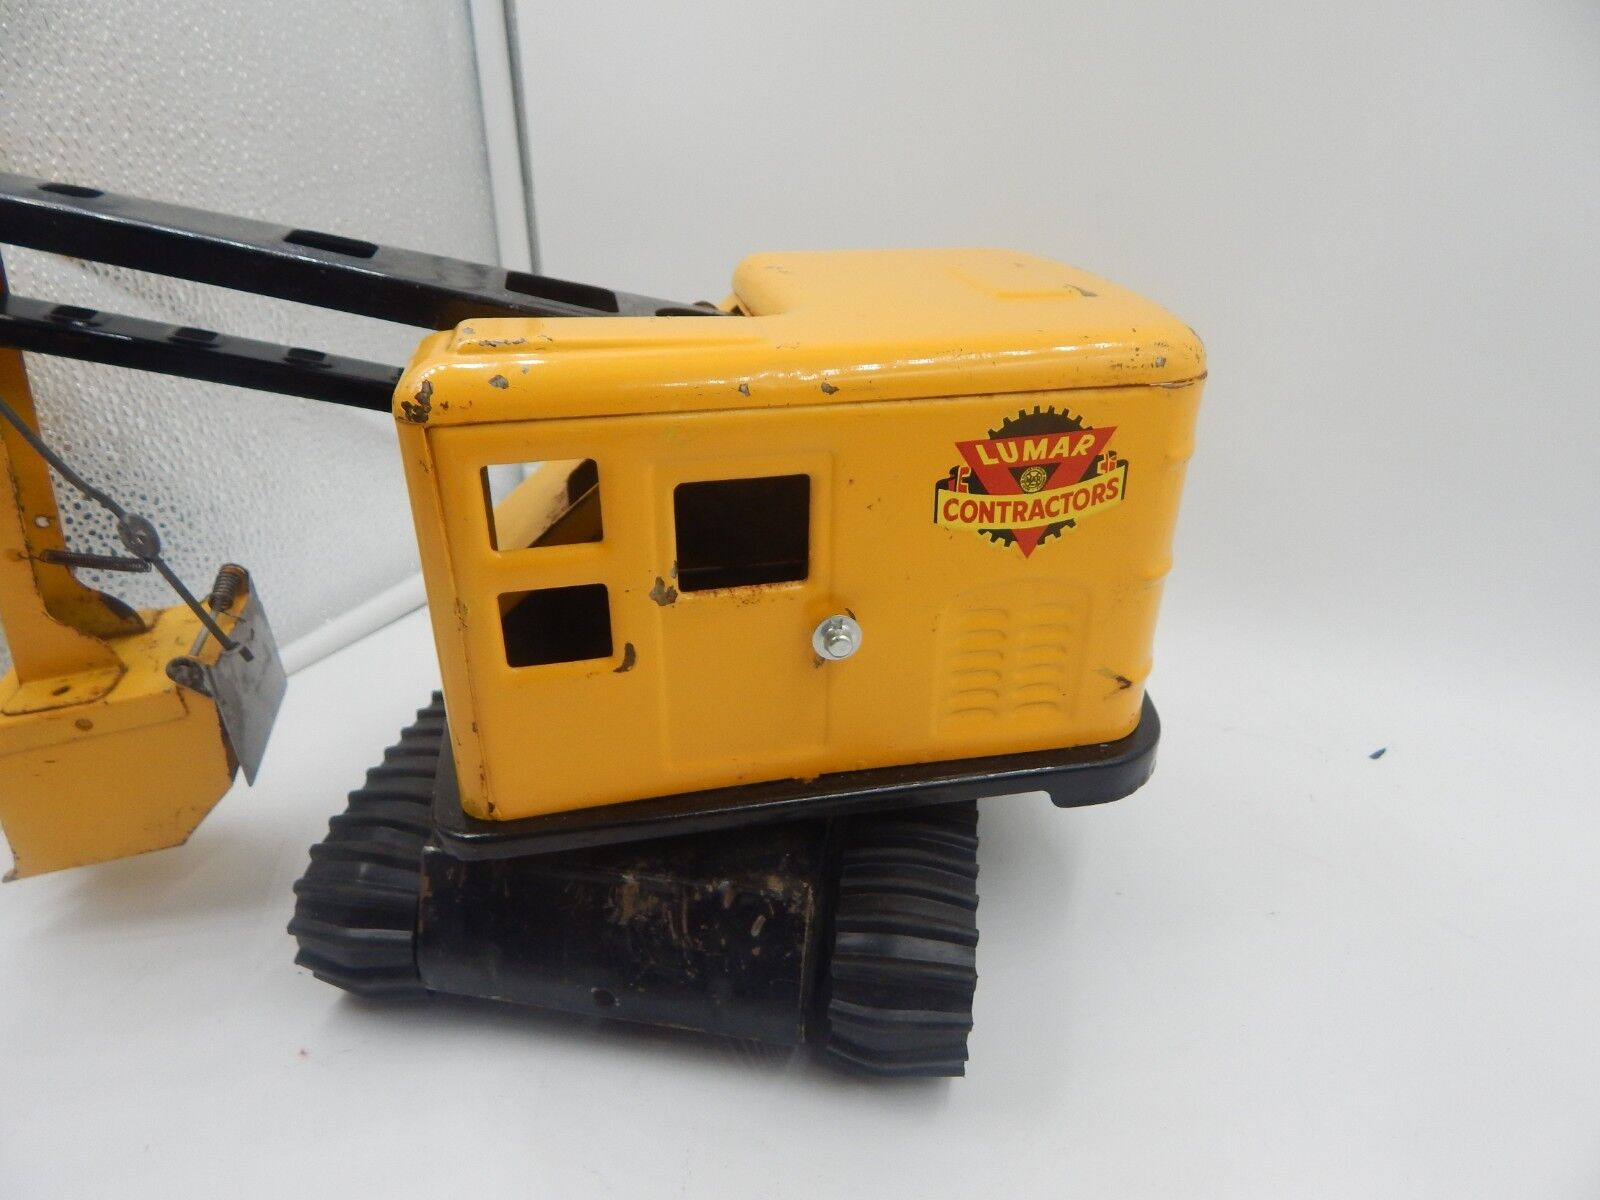 Marx Lumar Power Shovel Steam Shovel Shovel Shovel Vintage 1940s Pressed Steel Toy 65138b